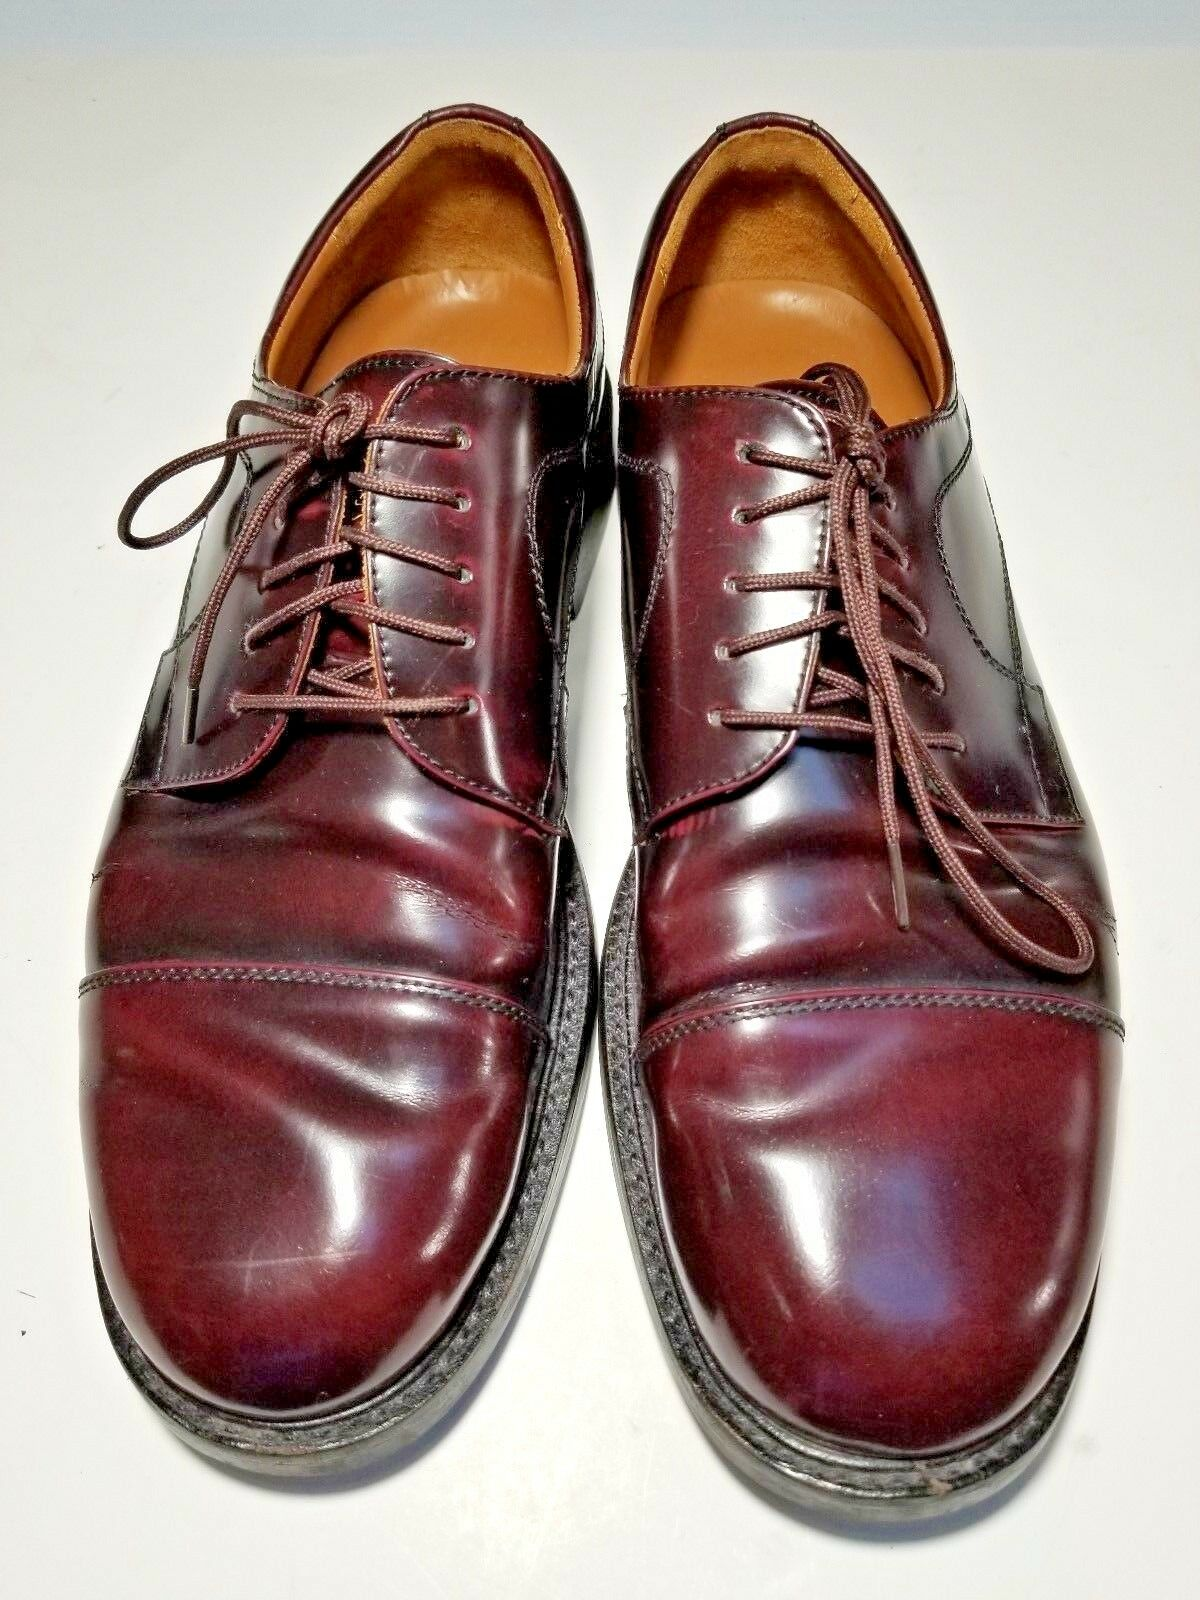 Johnston & Murphy Minzer Dark Burgundy Men's Cap Toe Oxfords Size 10.5